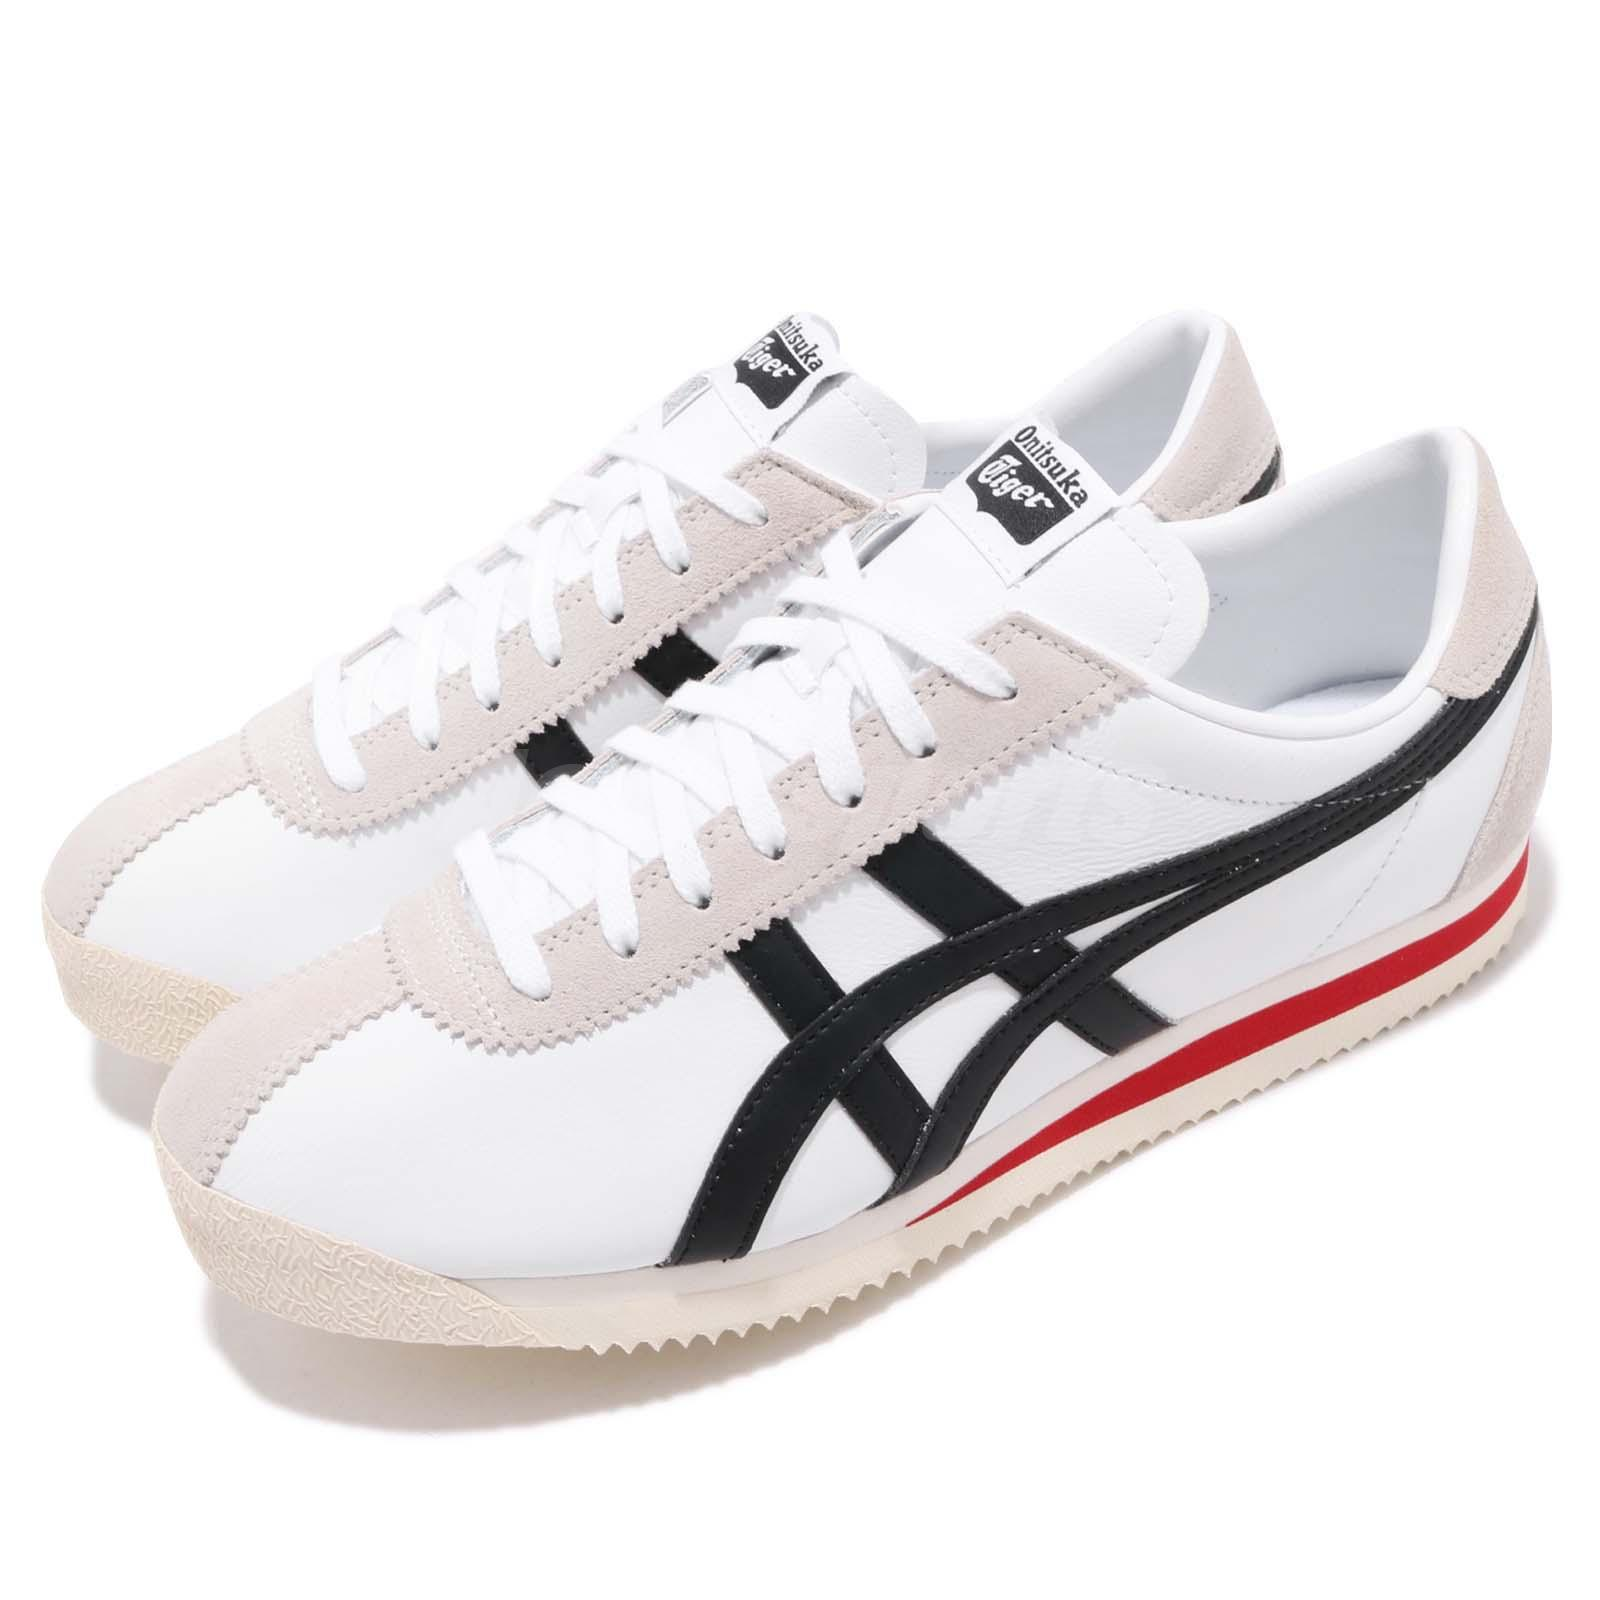 sale retailer 27876 75a0f Details about Asics Onitsuka Tiger Corsair White Black Red Men Women Shoe  Sneaker 1183A357-100